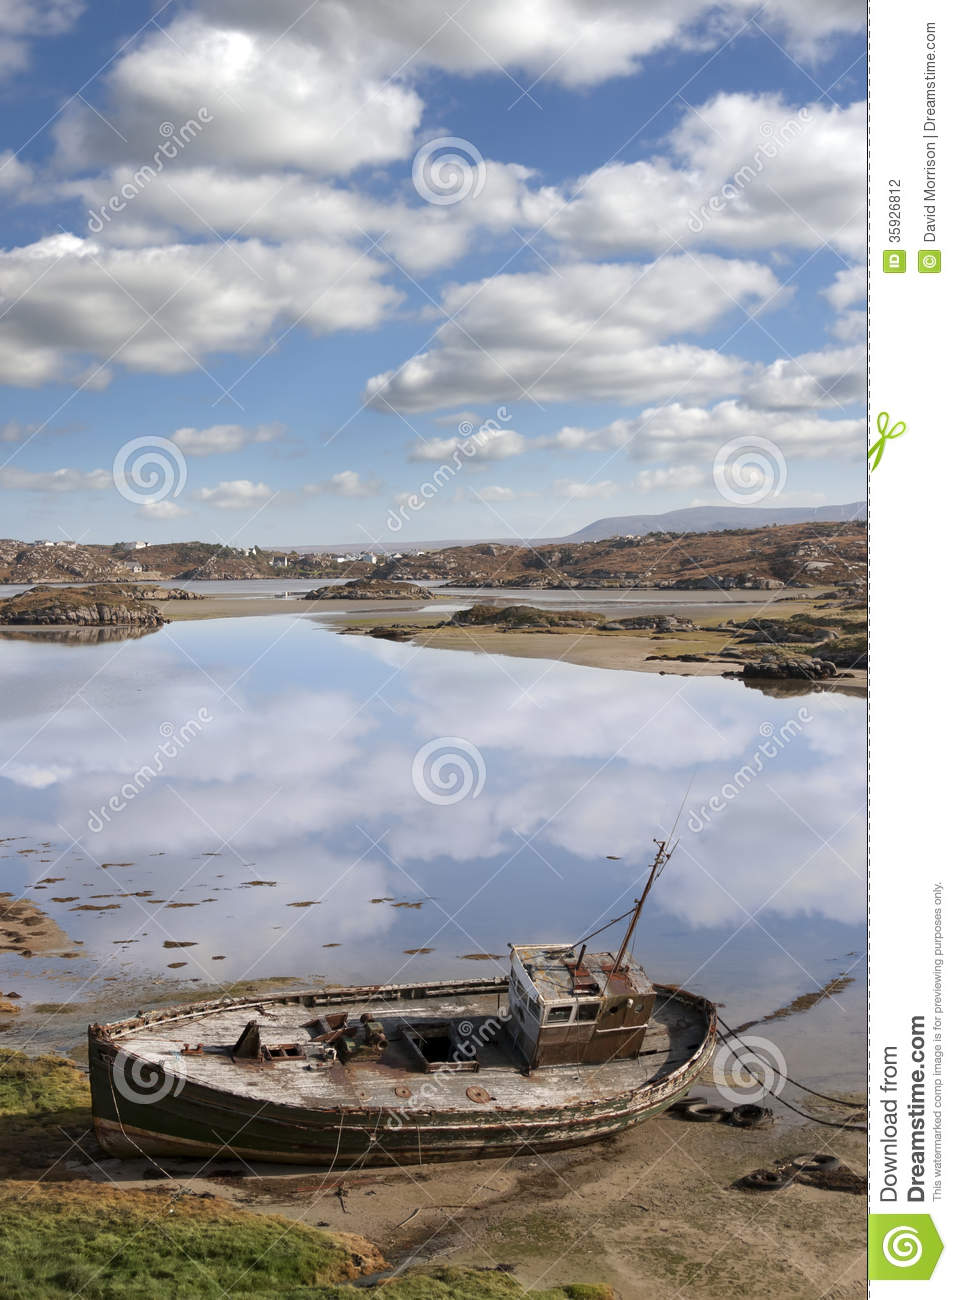 Old Beached Fishing Boat On Donegal Beach Stock Photo - Image of channel, blue: 35926812